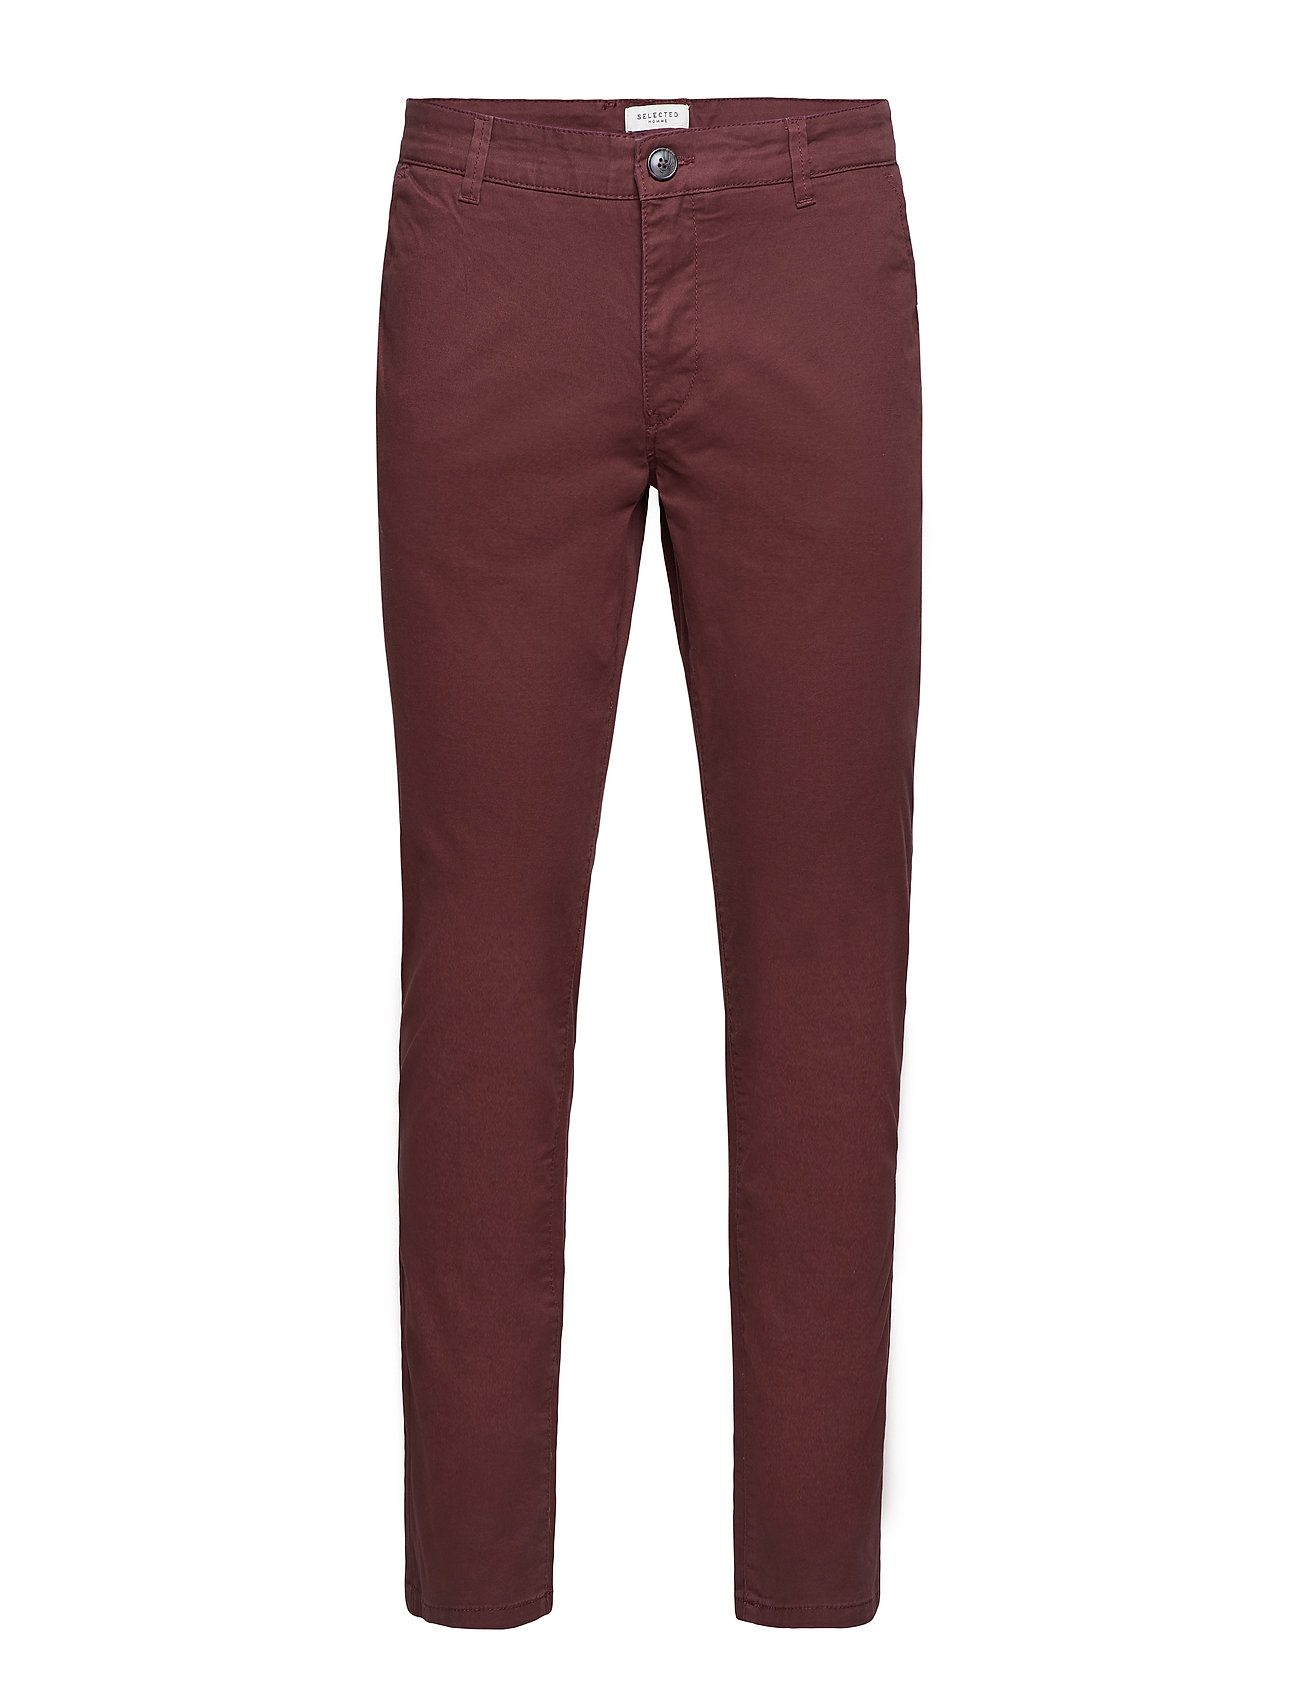 Selected Homme SLHSTRAIGHT-PARIS B. CHOCO PANTS W NOOS - BITTER CHOCOLATE